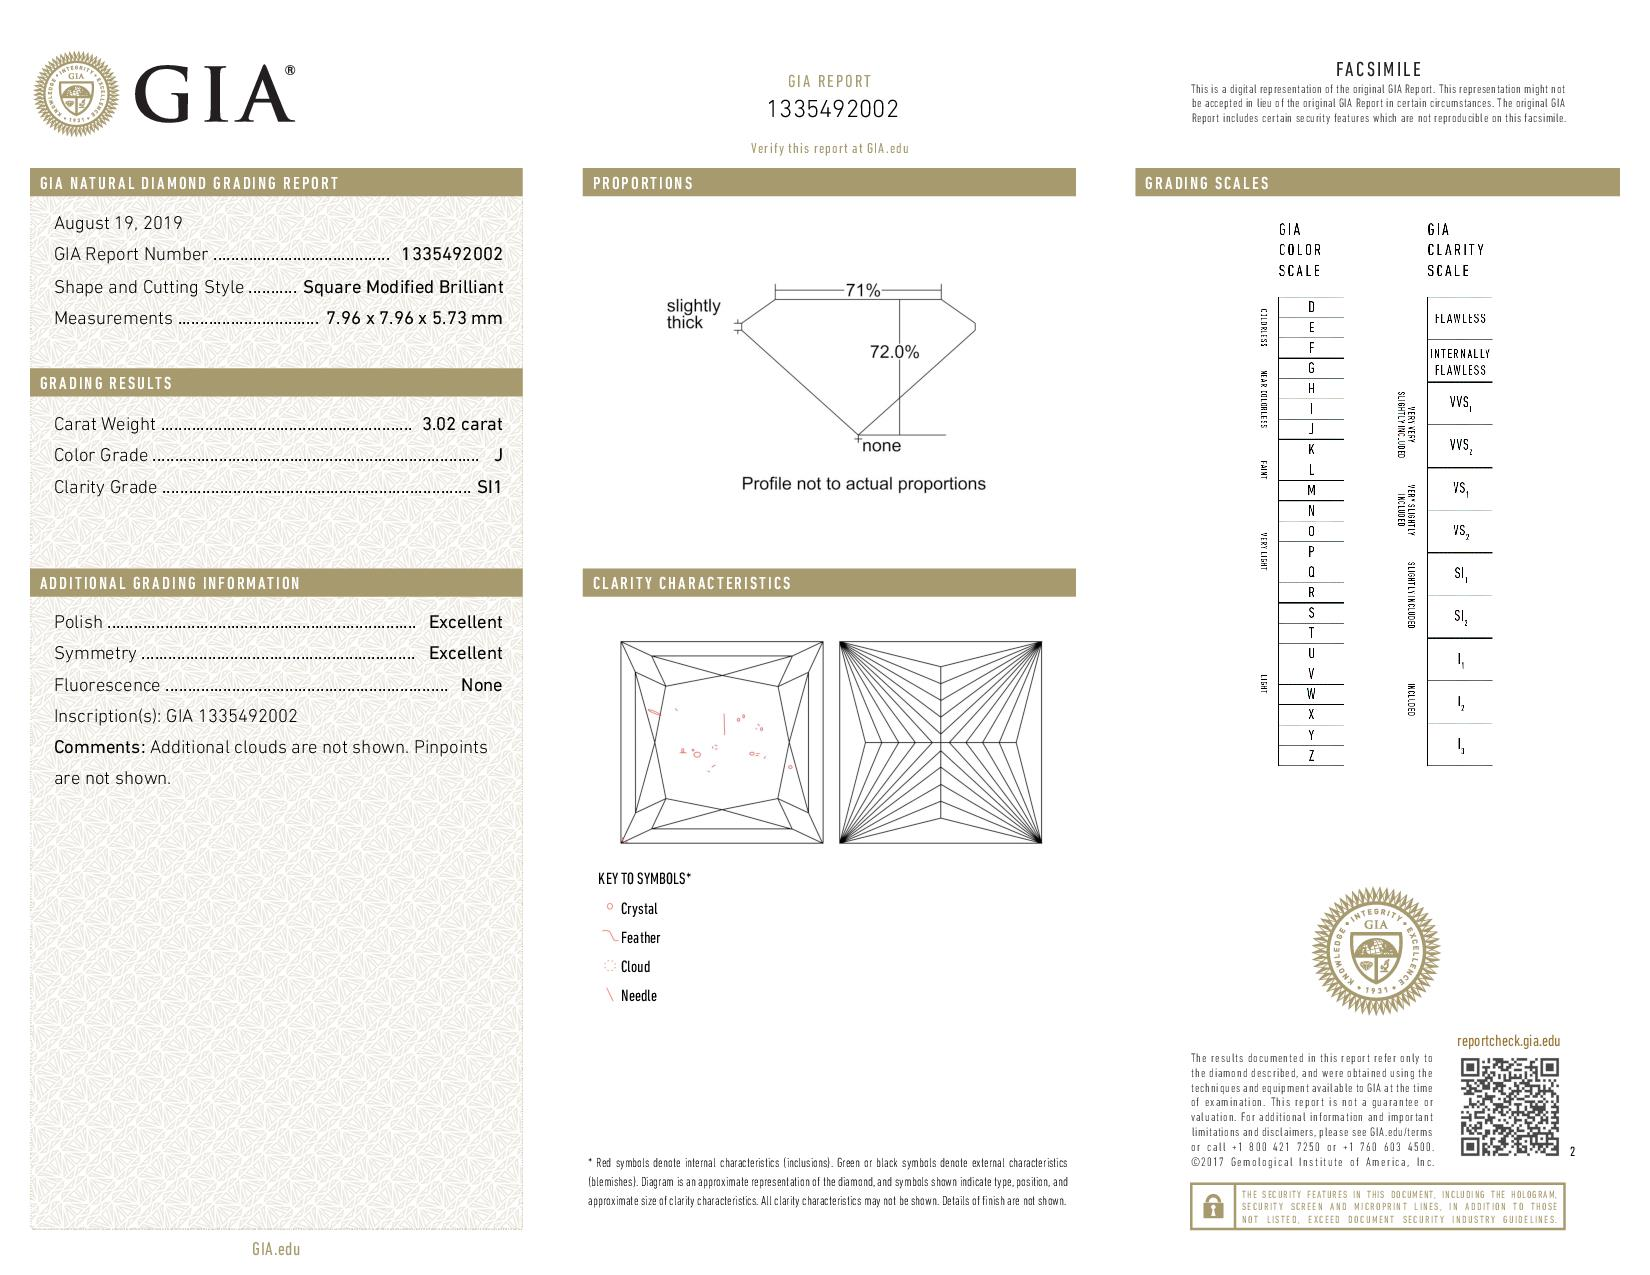 This is a 3.02 carat princess shape, J color, SI1 clarity natural diamond accompanied by a GIA grading report.